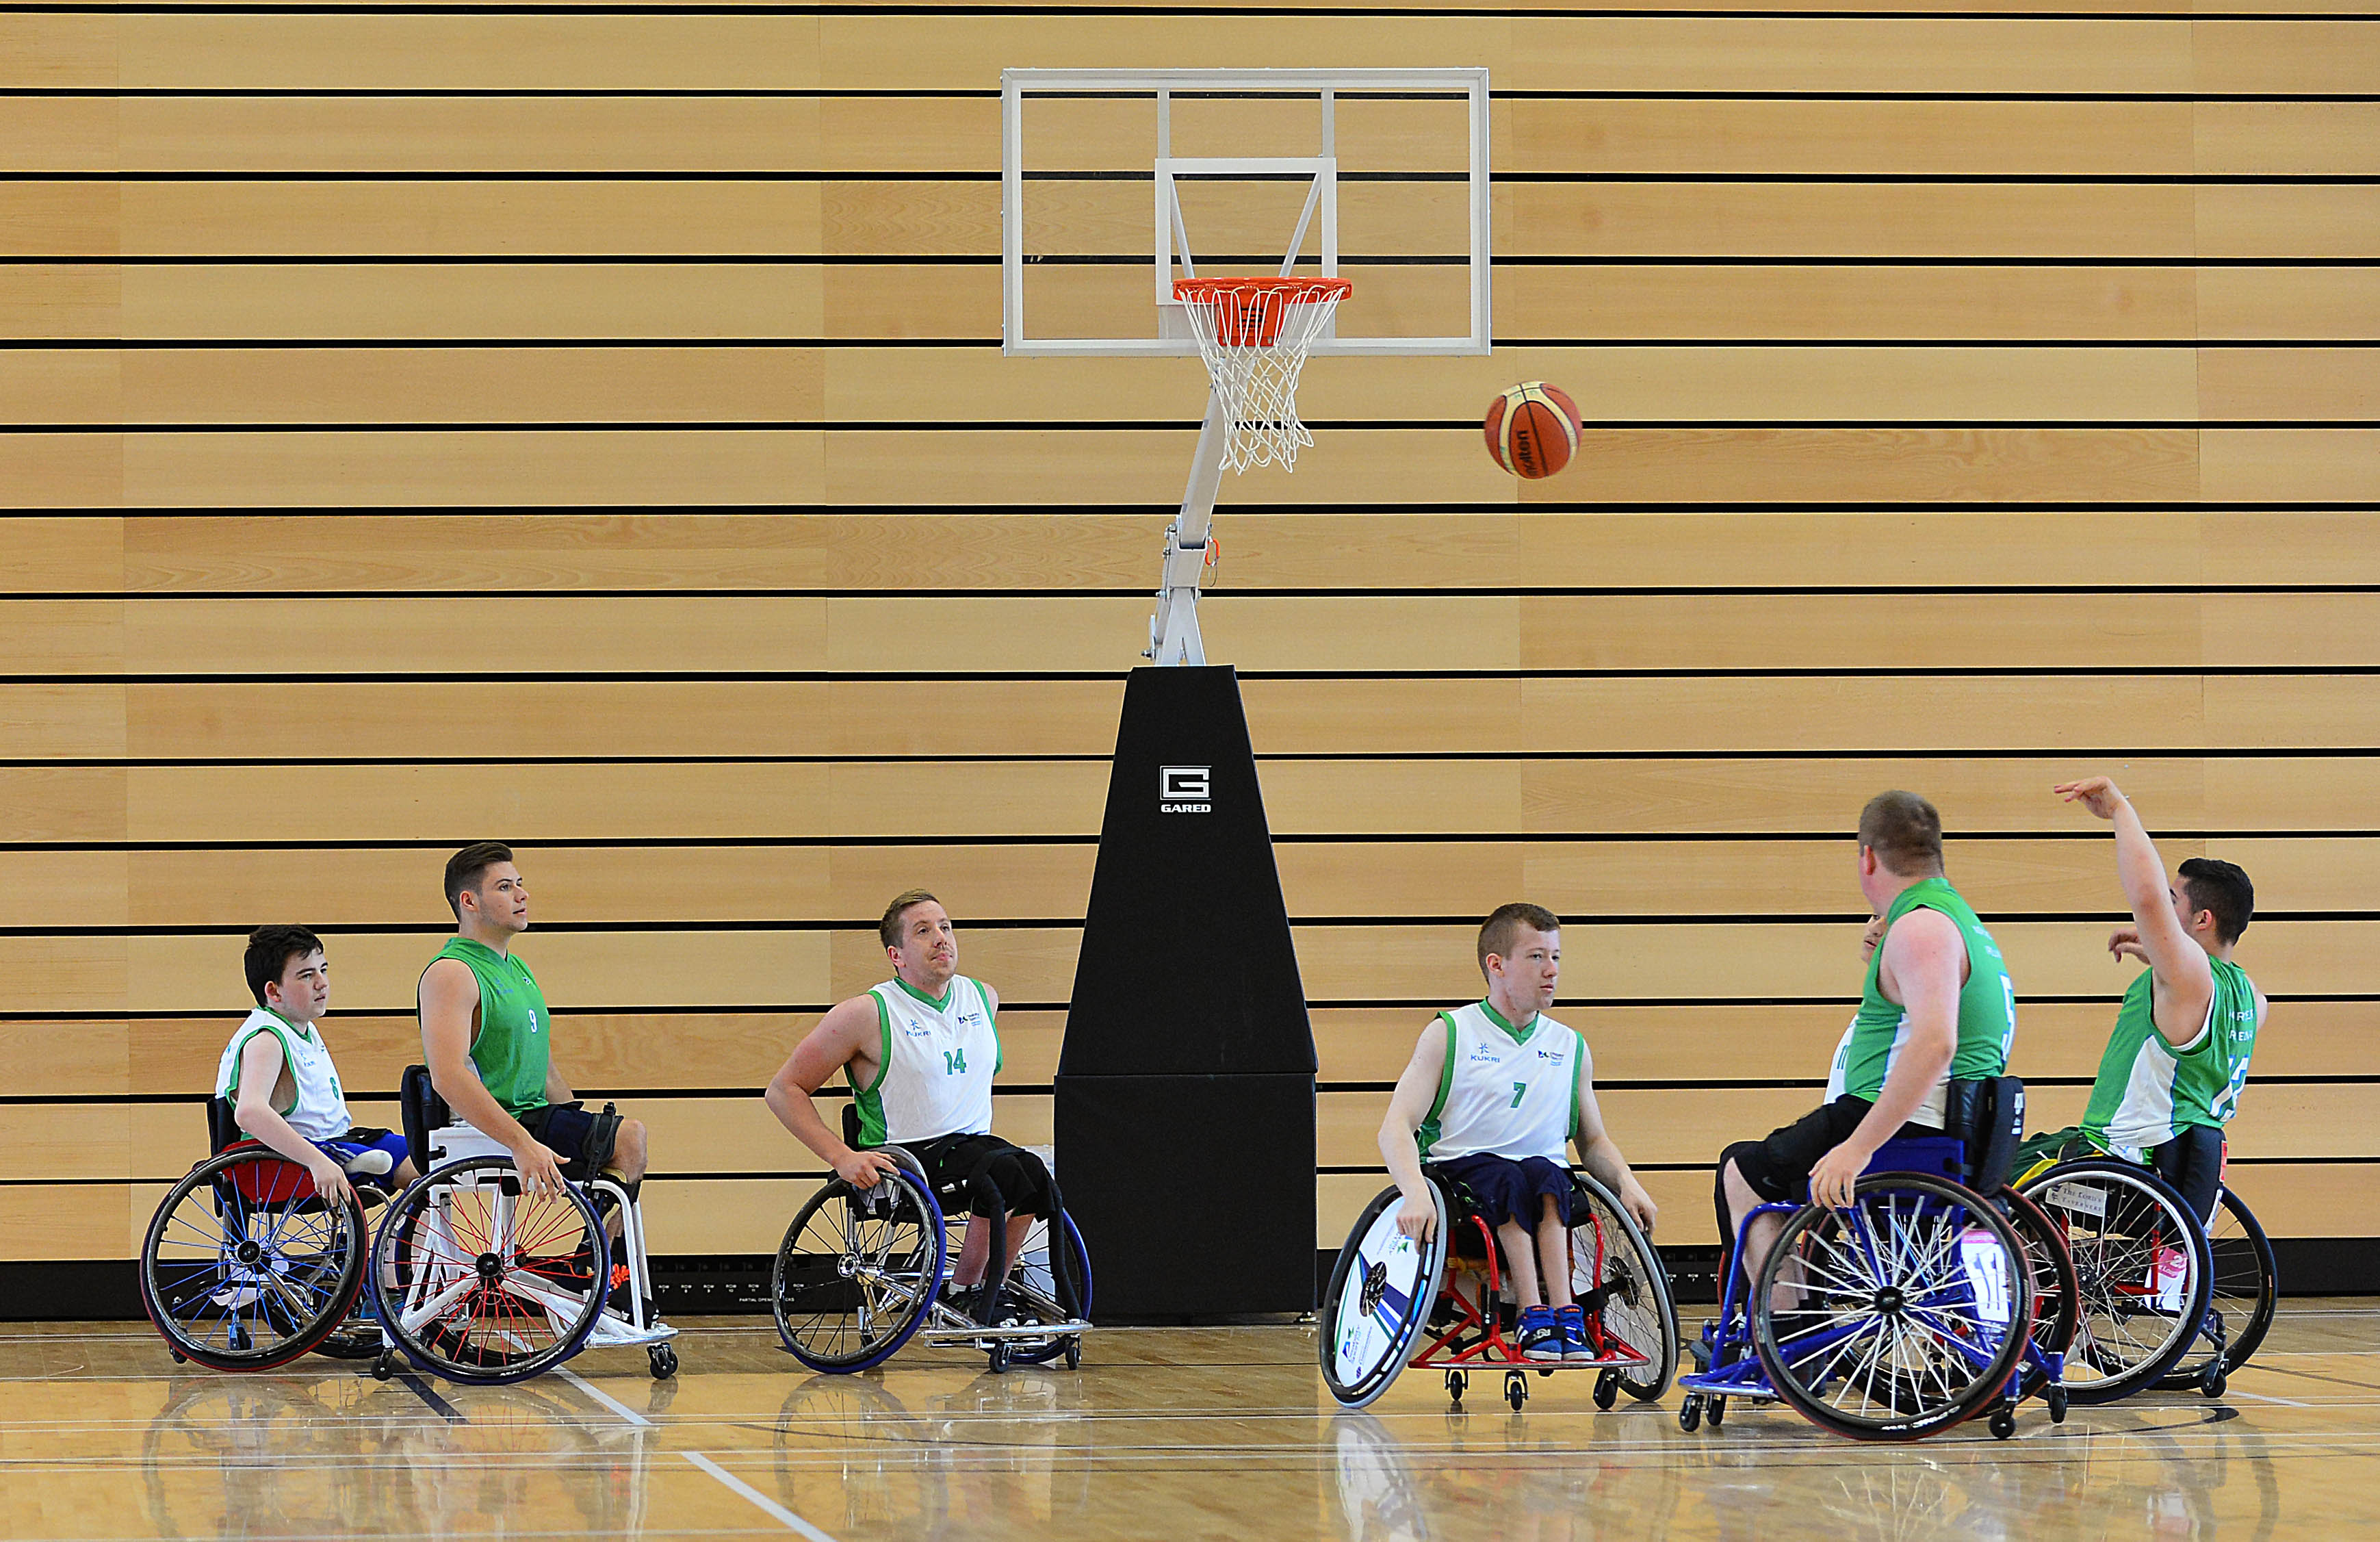 Northern Ireland Wheelchair Basketball players in action